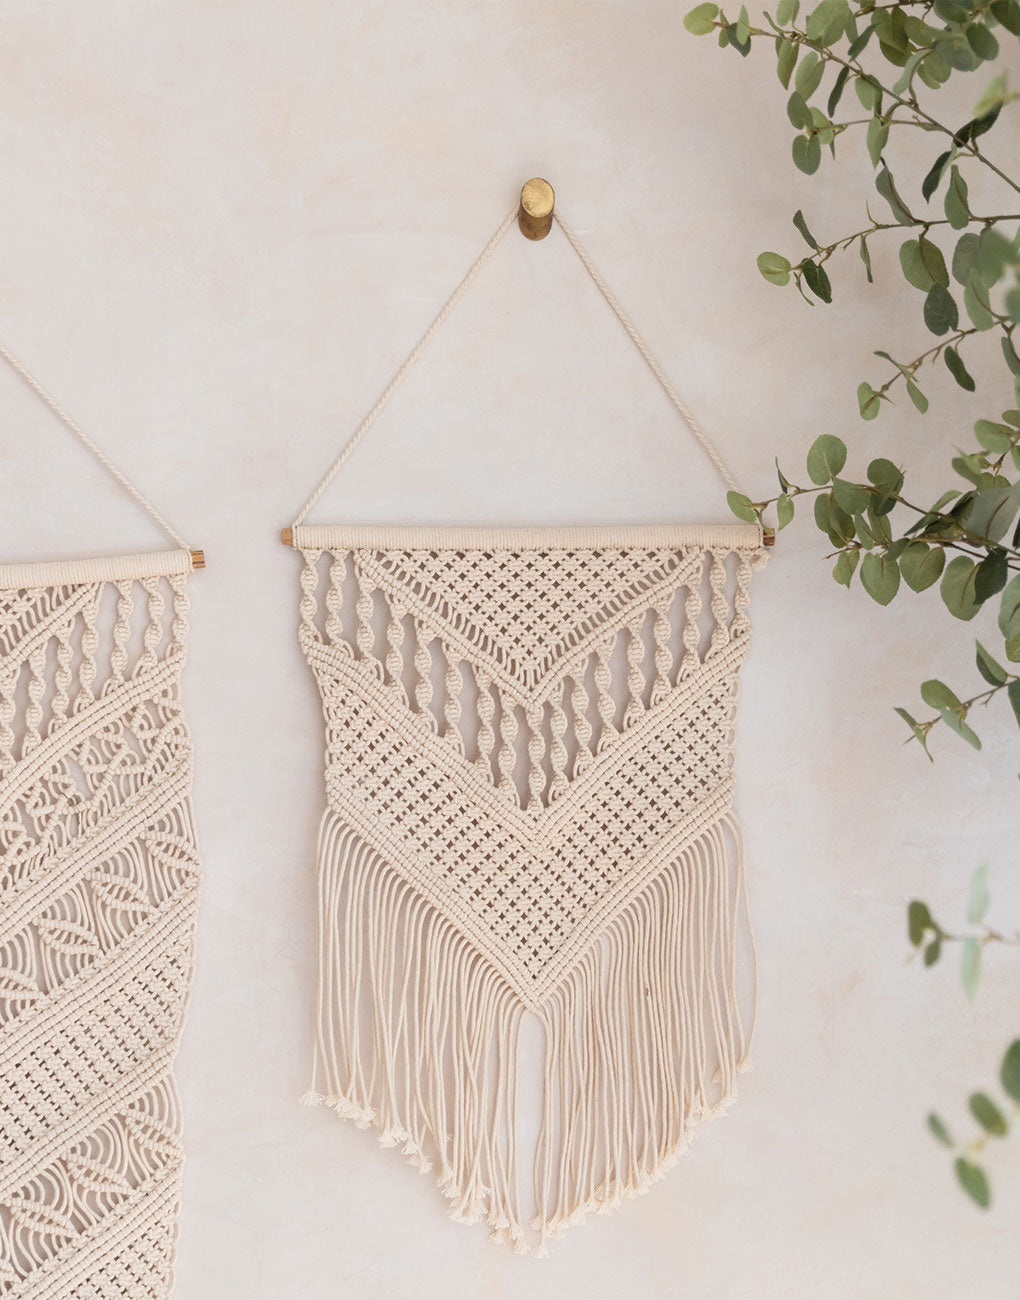 Macrame Wall Hangings | The Little Market